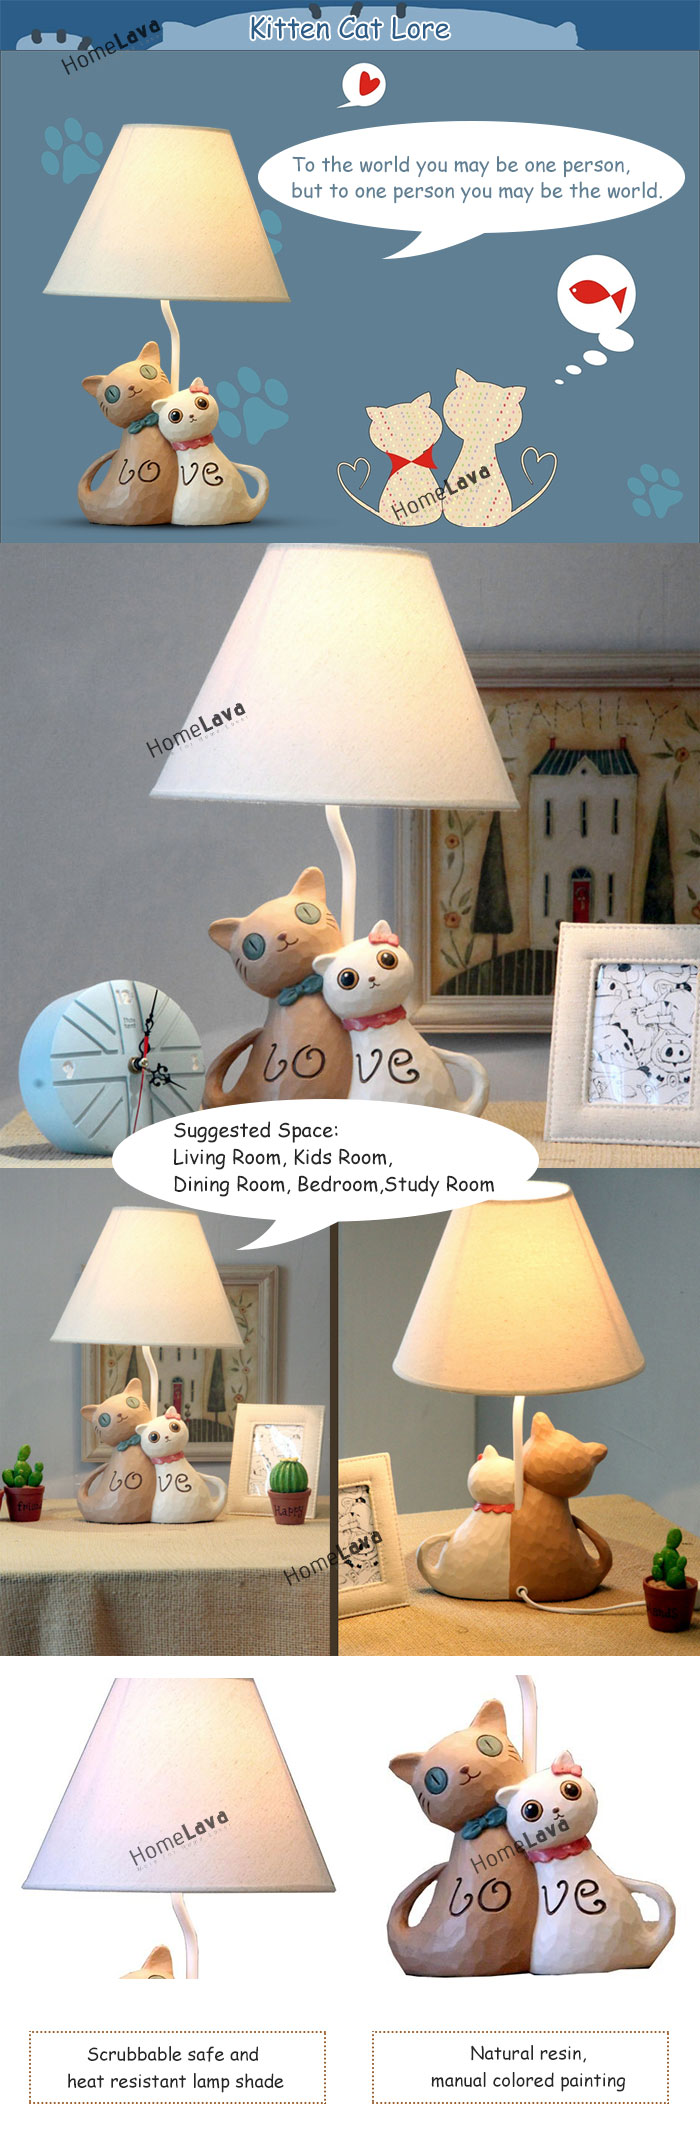 Modern Simple Creative Couple Cat Lamp Linen Shade(Kitten Cat Lore)